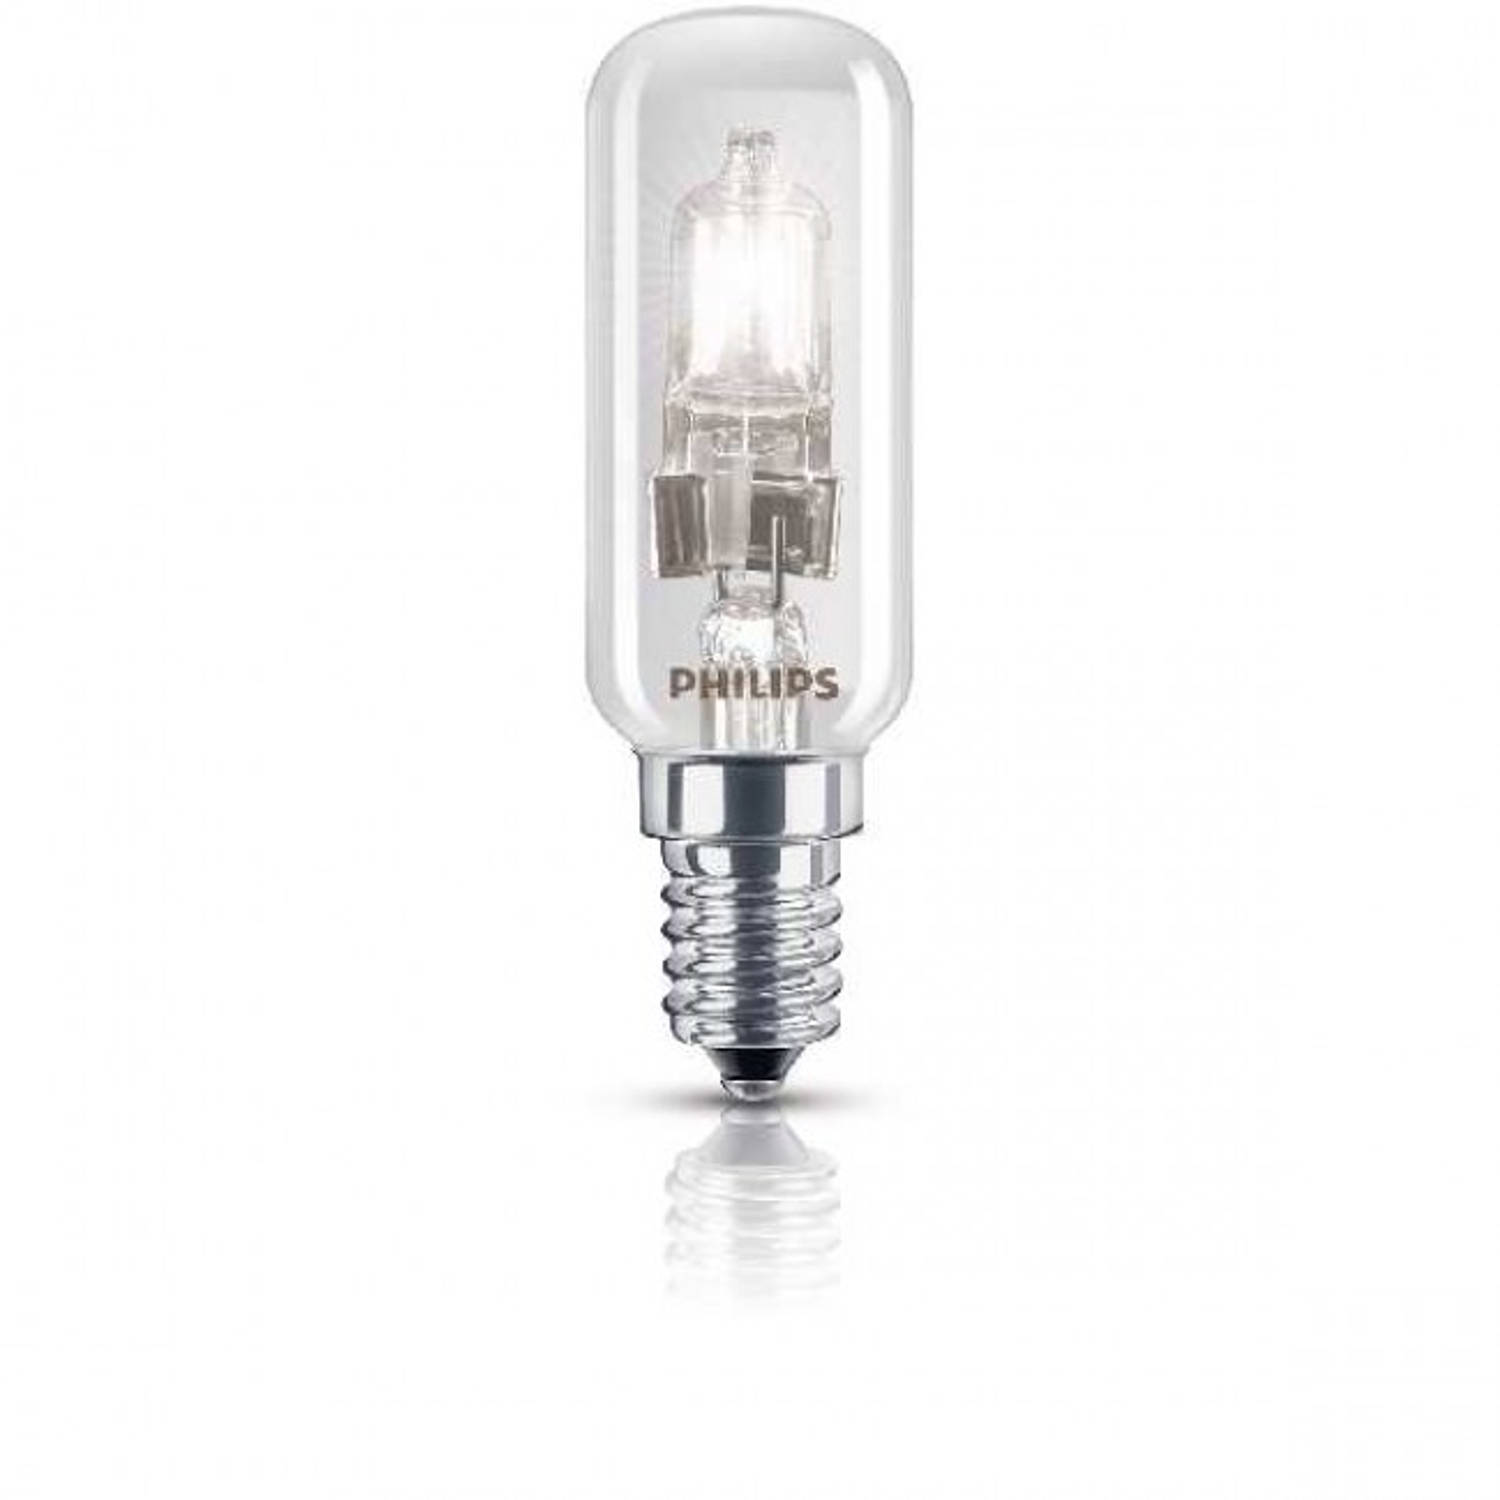 Philips EcoClassic halogeenlamp T25L 28 W E14 warm wit